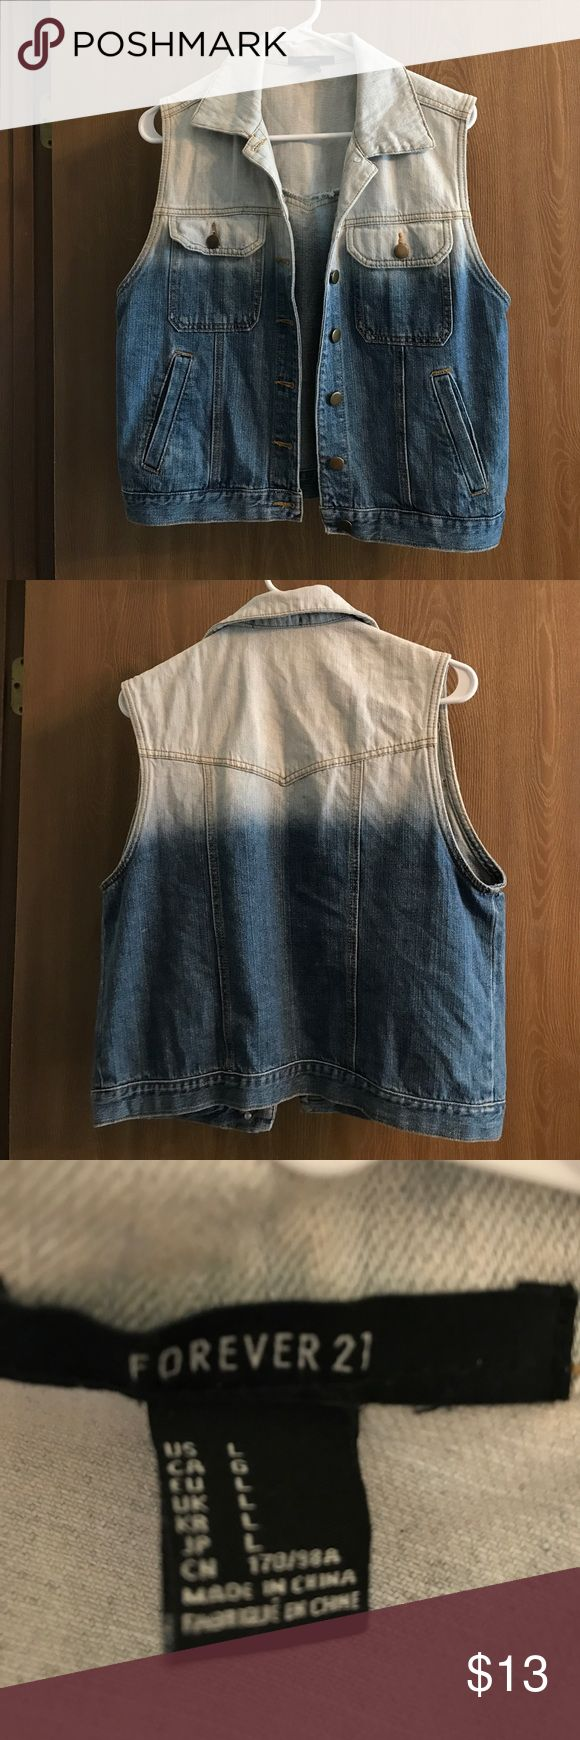 Blue jean vest Blue Jean vest in large from forever 21. Forever 21 Tops Button Down Shirts